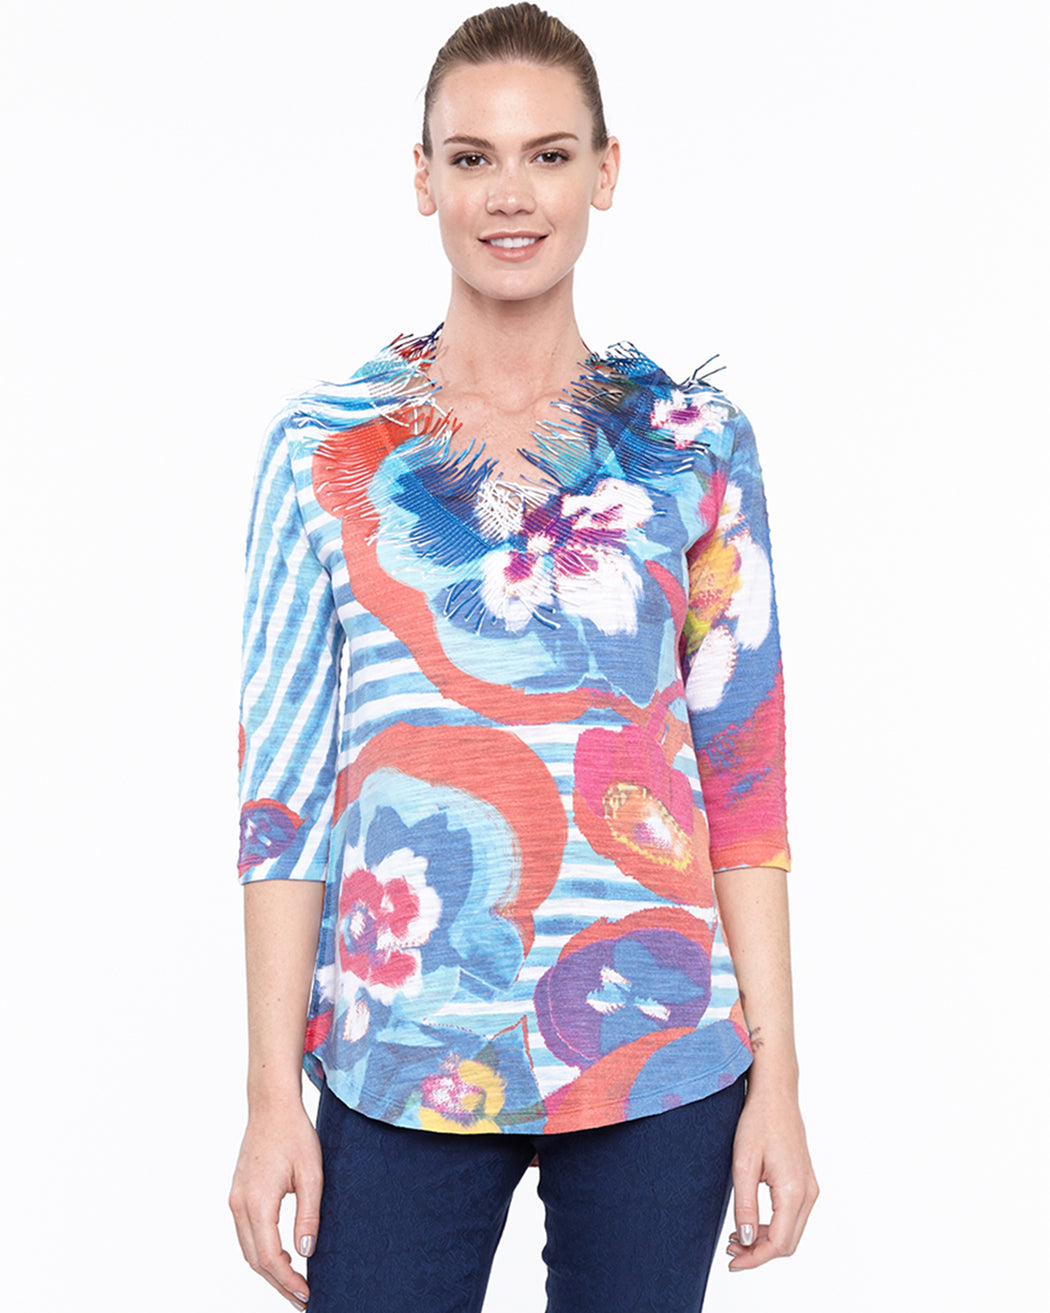 Tunic 7 Pop Art - Atelier5